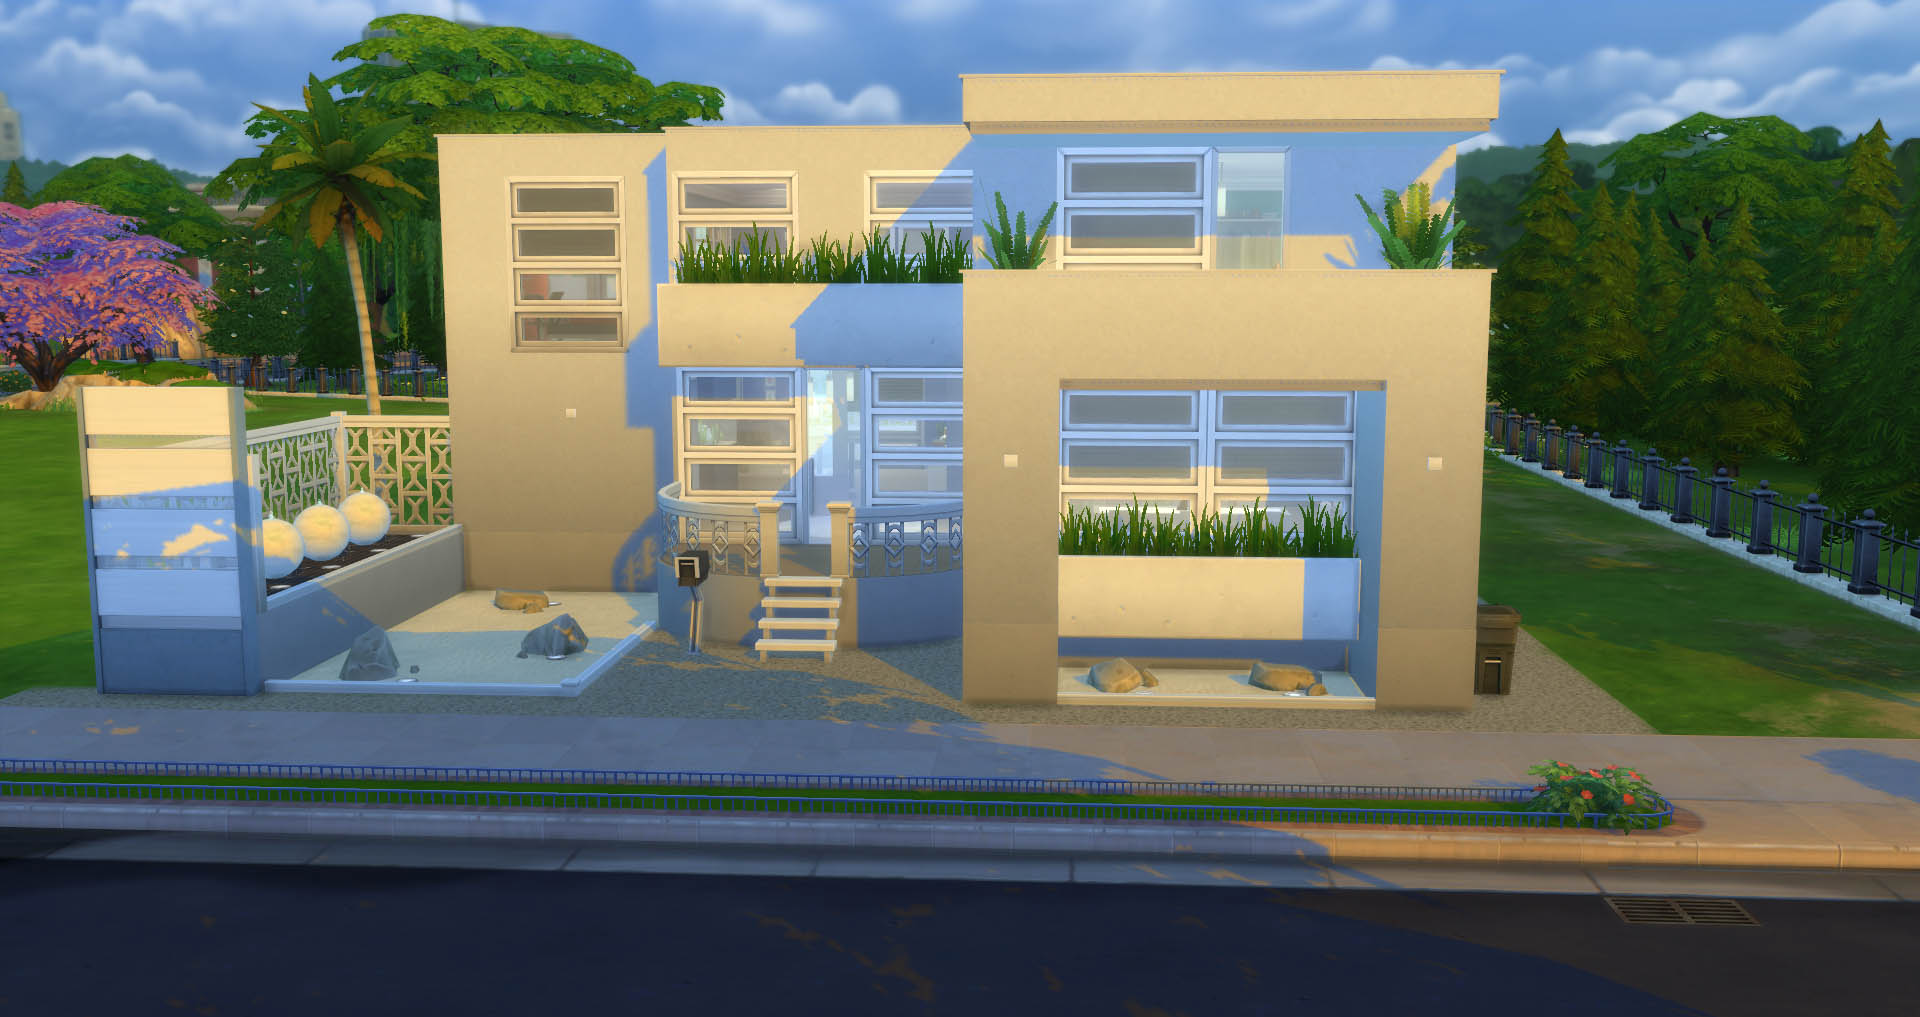 Lotes y barrios descargas capital sims for Casas modernas sims 4 paso a paso